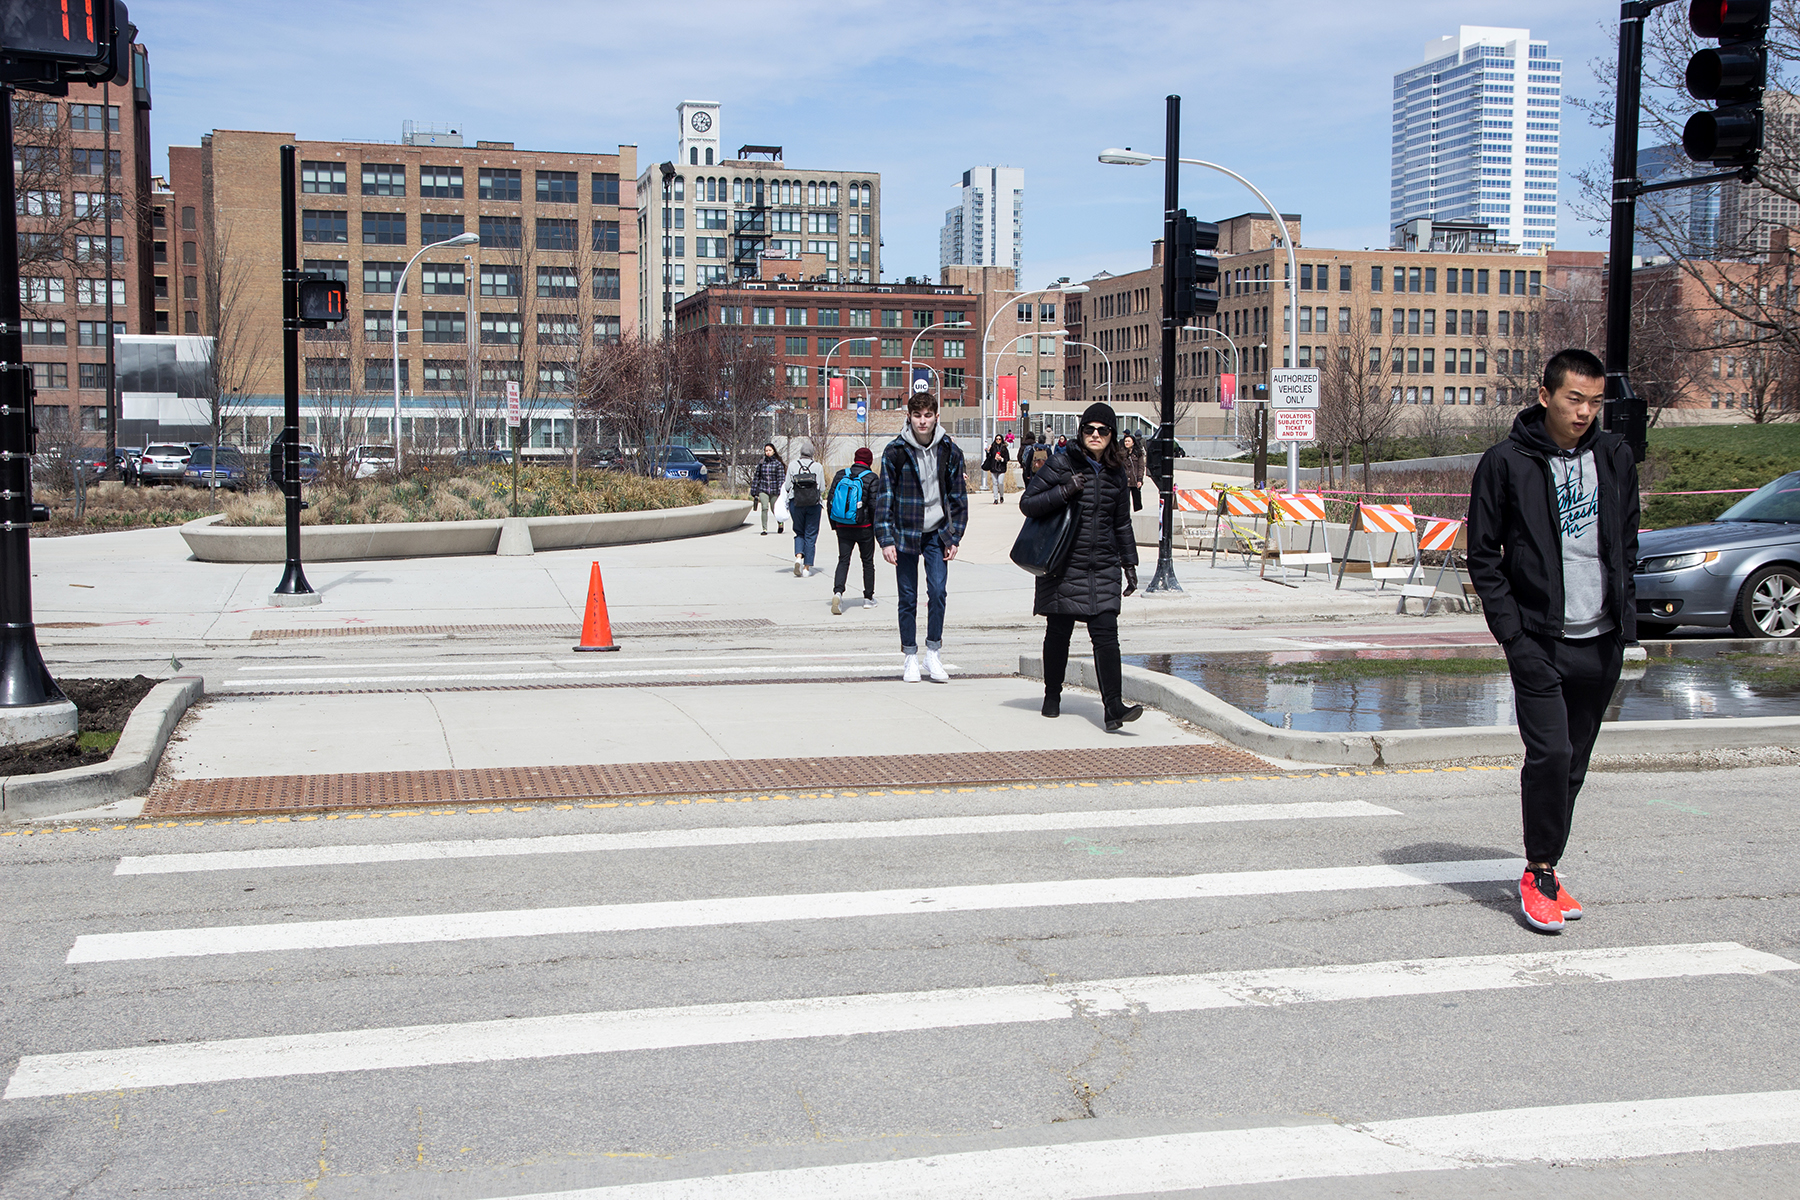 Stay safe, use the crosswalk | UIC Today